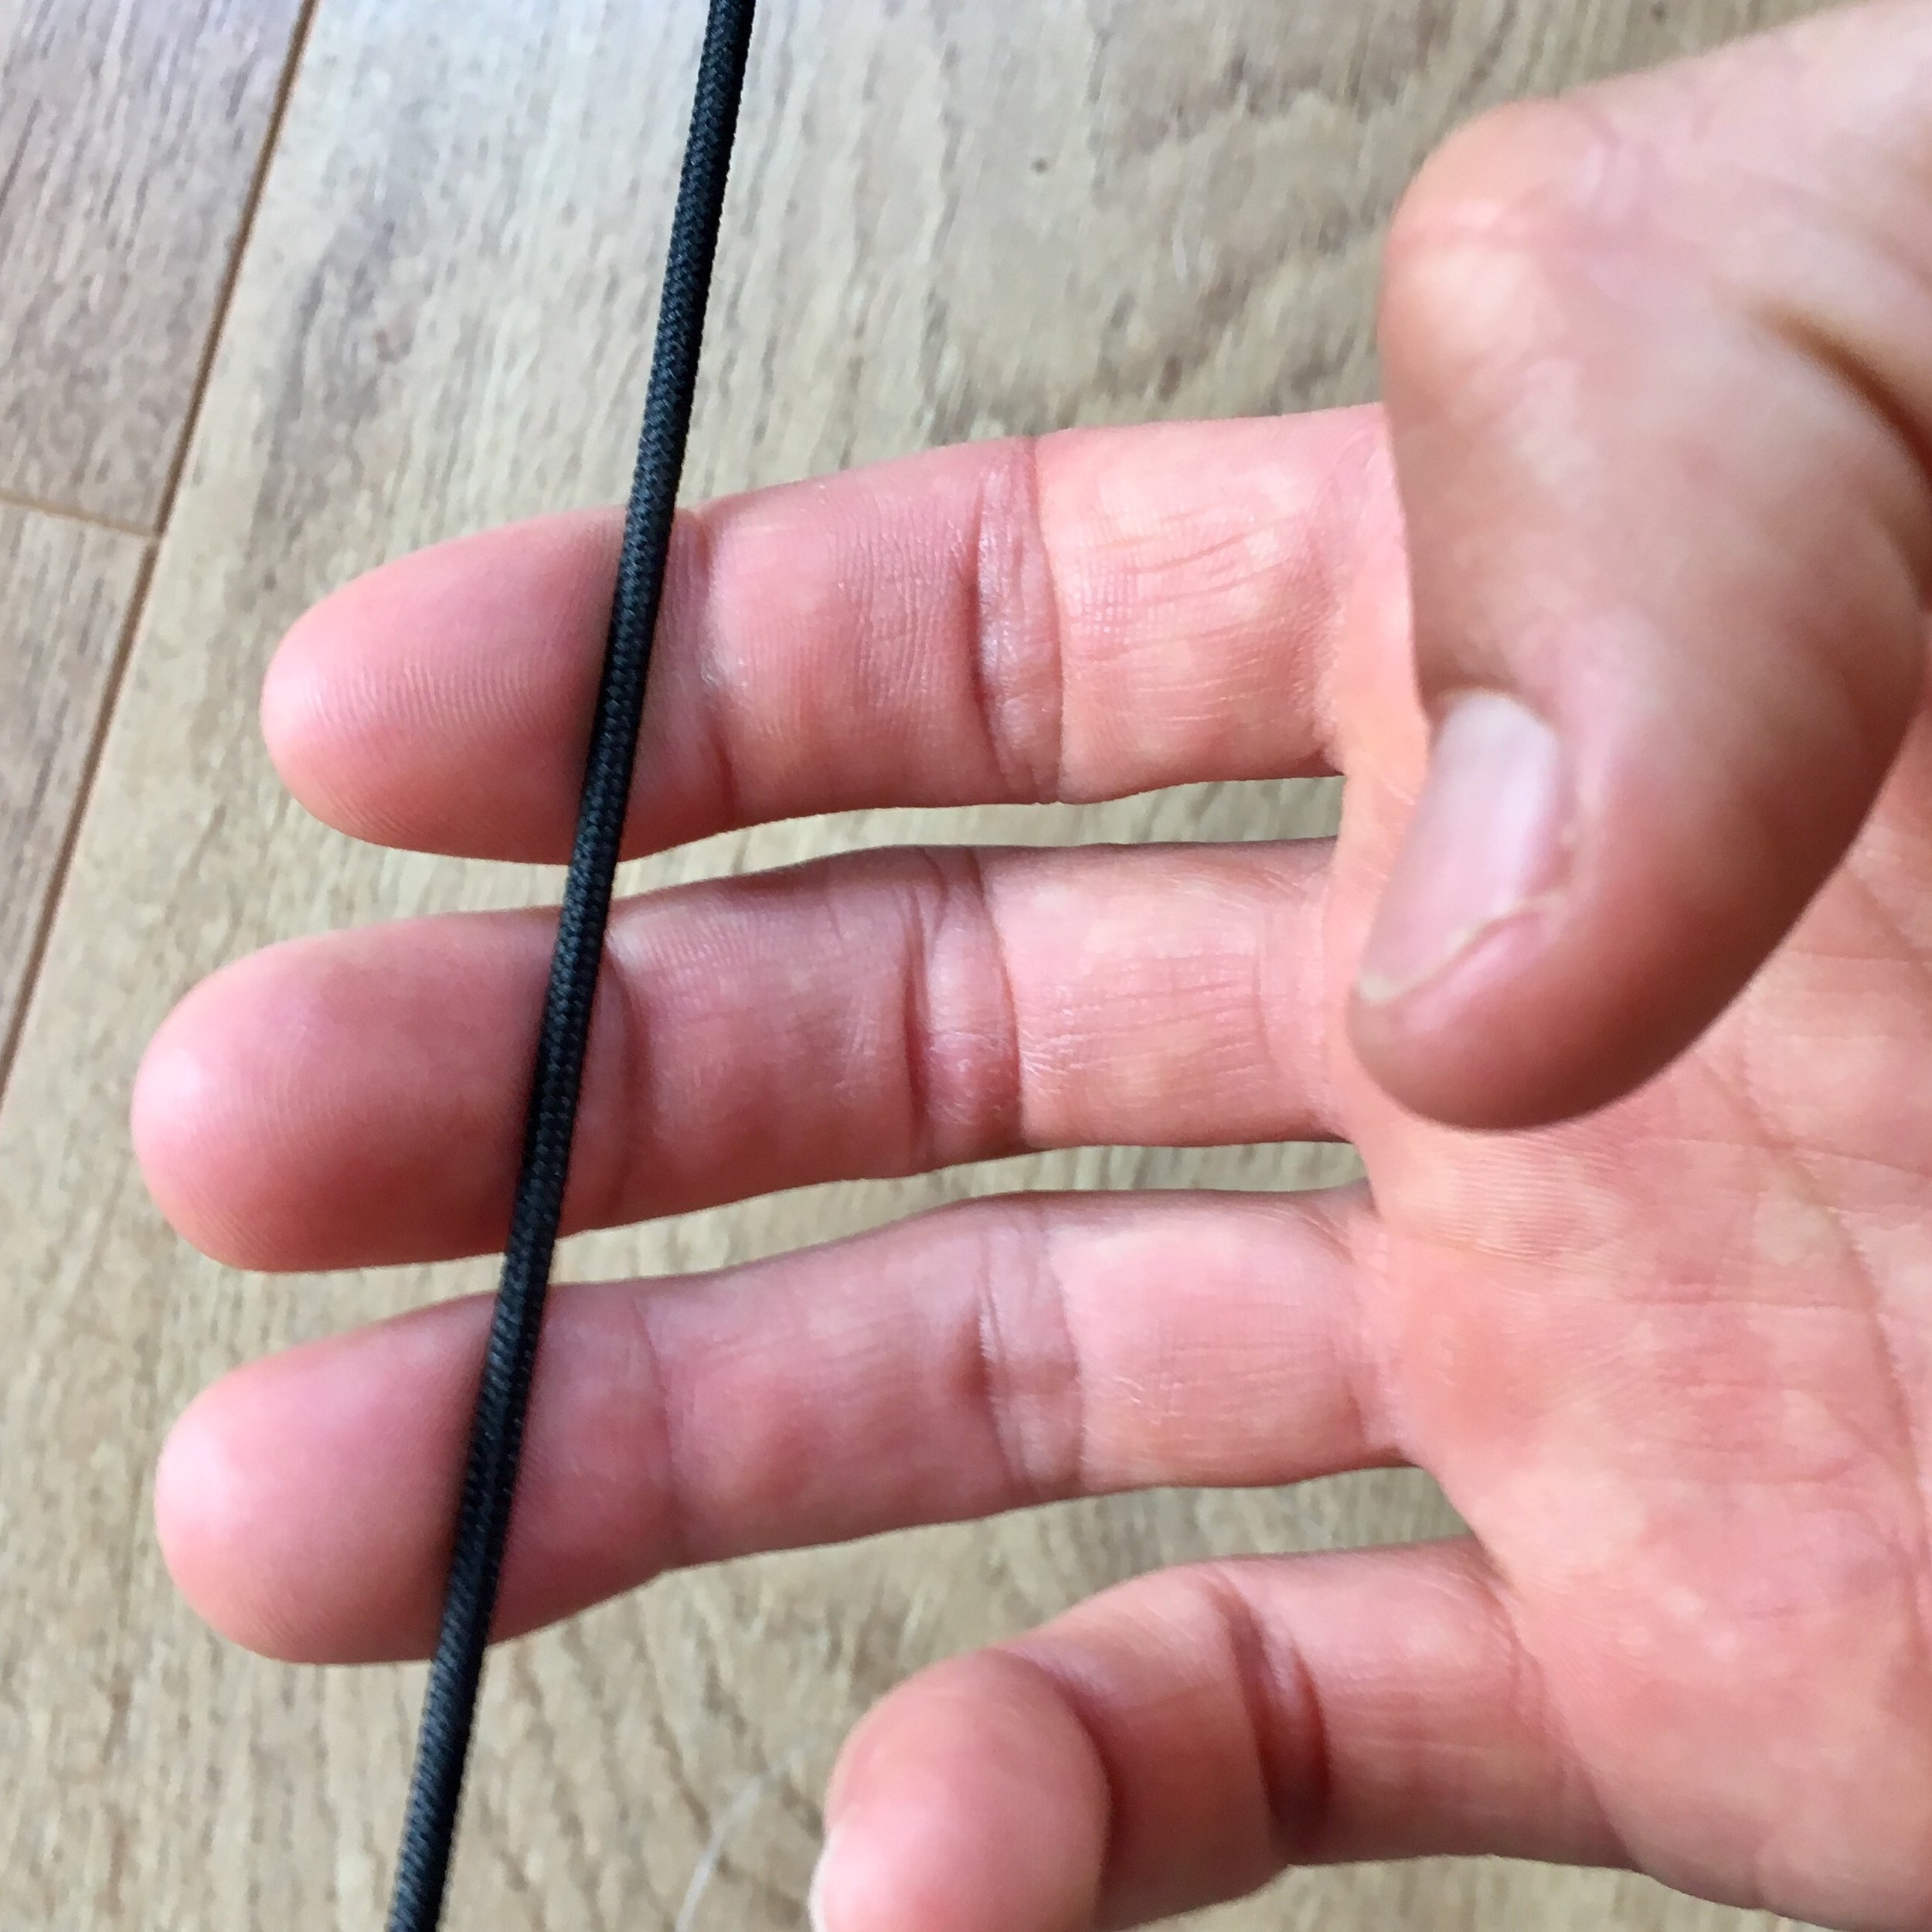 This is a shallower finger hook. The string is placed in front of the joint on all three fingers. This position may lead to 'strumming' of the string.